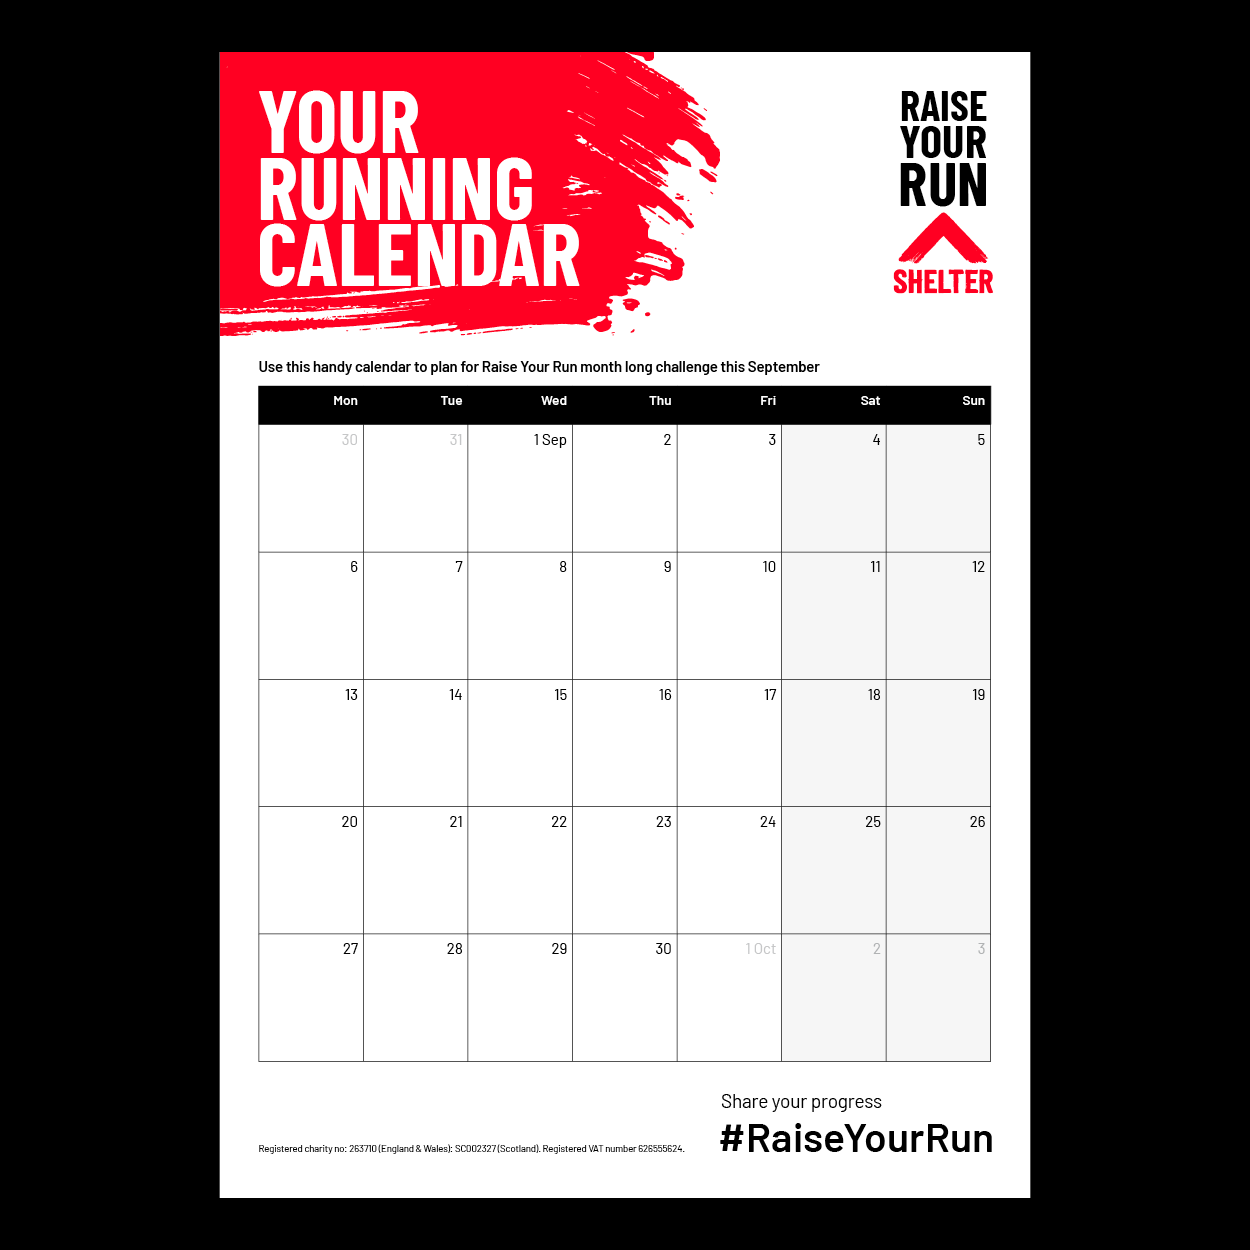 Preview image of the running calendar